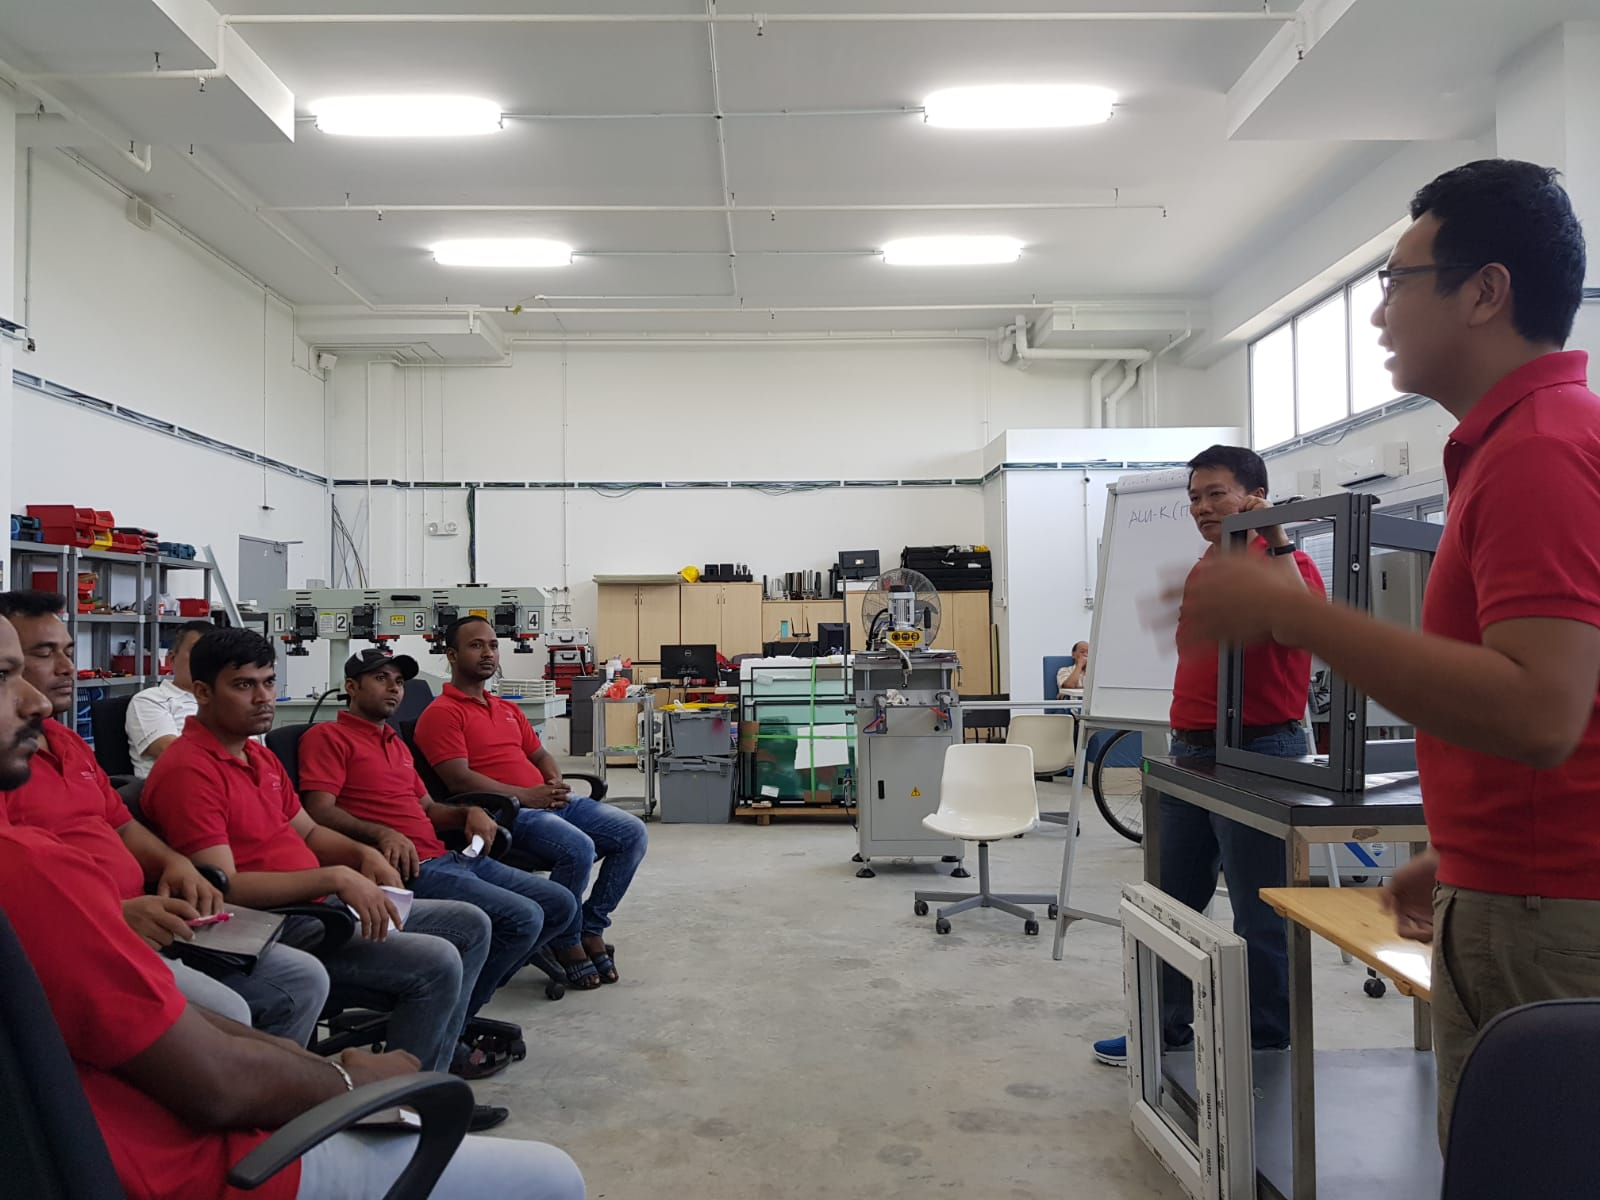 In-House Quality - Having our own workshop premises right here in Singapore gives us quality control over fabrication and assembly. Our team of engineers and professionals have decades of experience and we are fully licensed by HDB and BCA to conduct window installation work. Our years of experience in solving the toughest noise isolation challenges lets us succeed where others have failed.